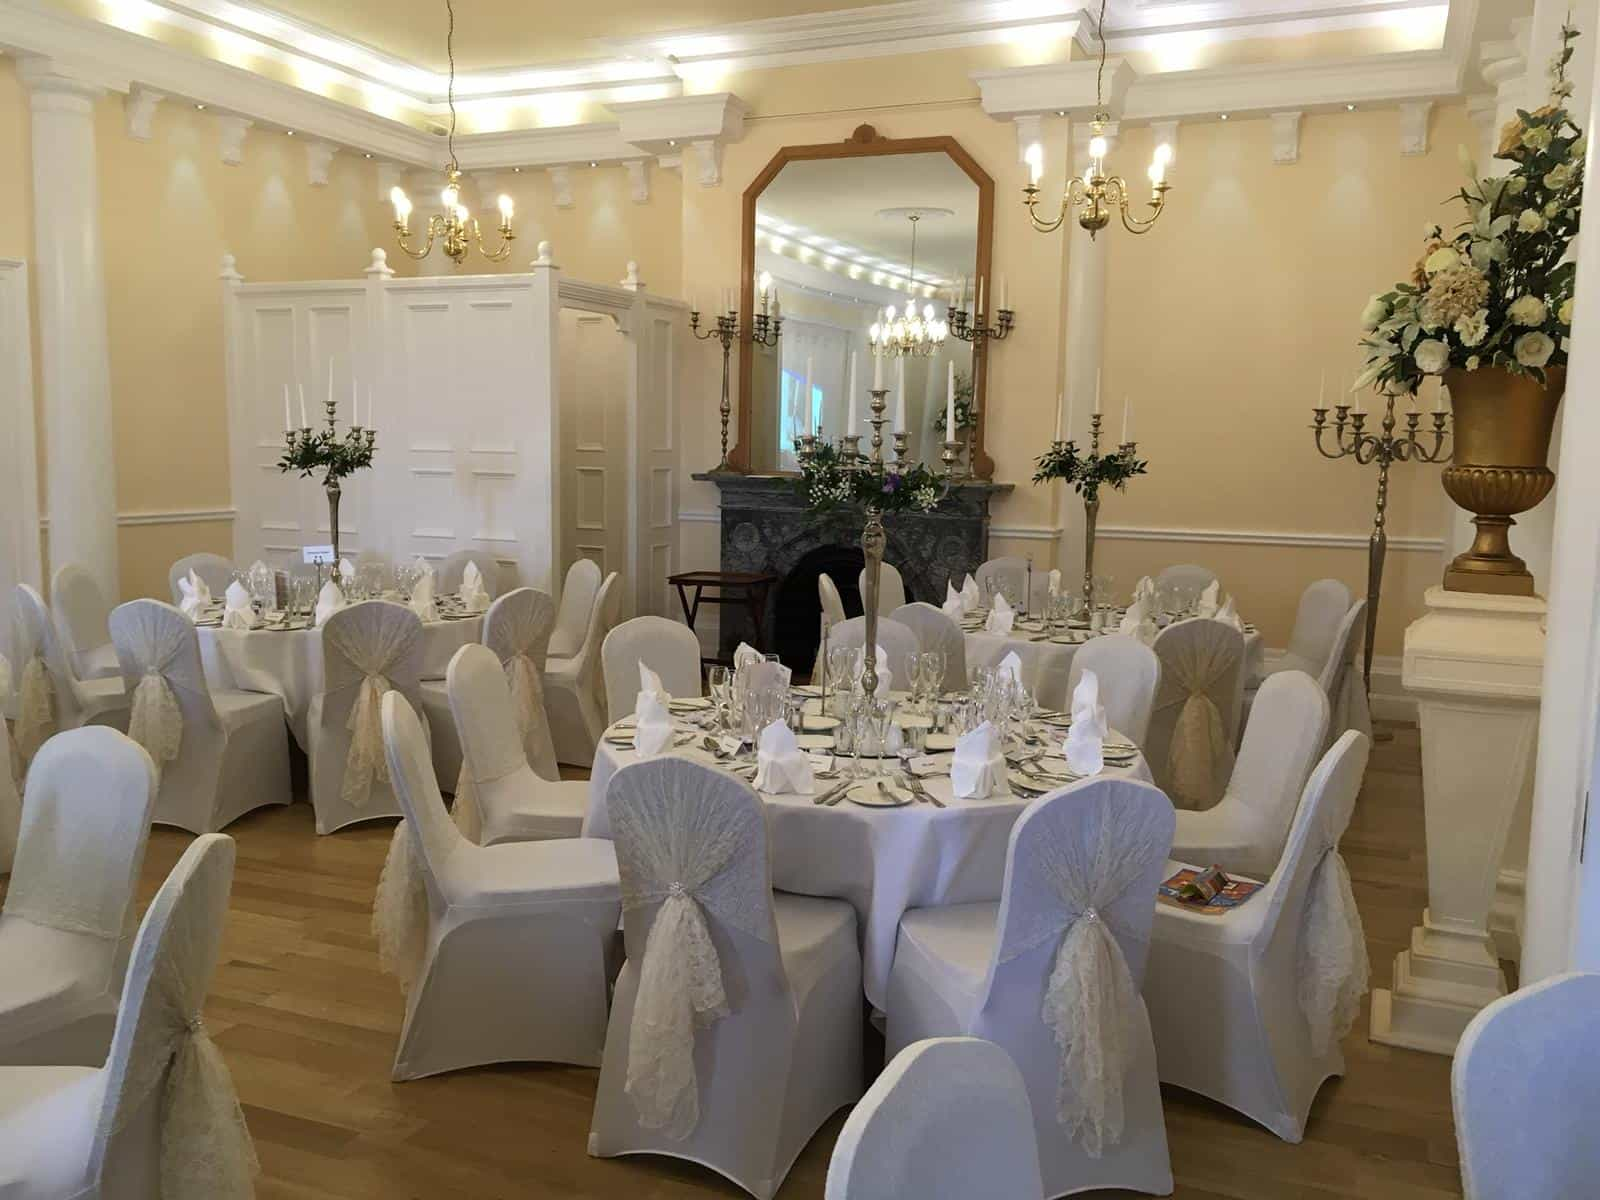 Wedding breakfast venue dressing with white table and chair linen accompanied by ivory sashes used as table runners and chair sashes